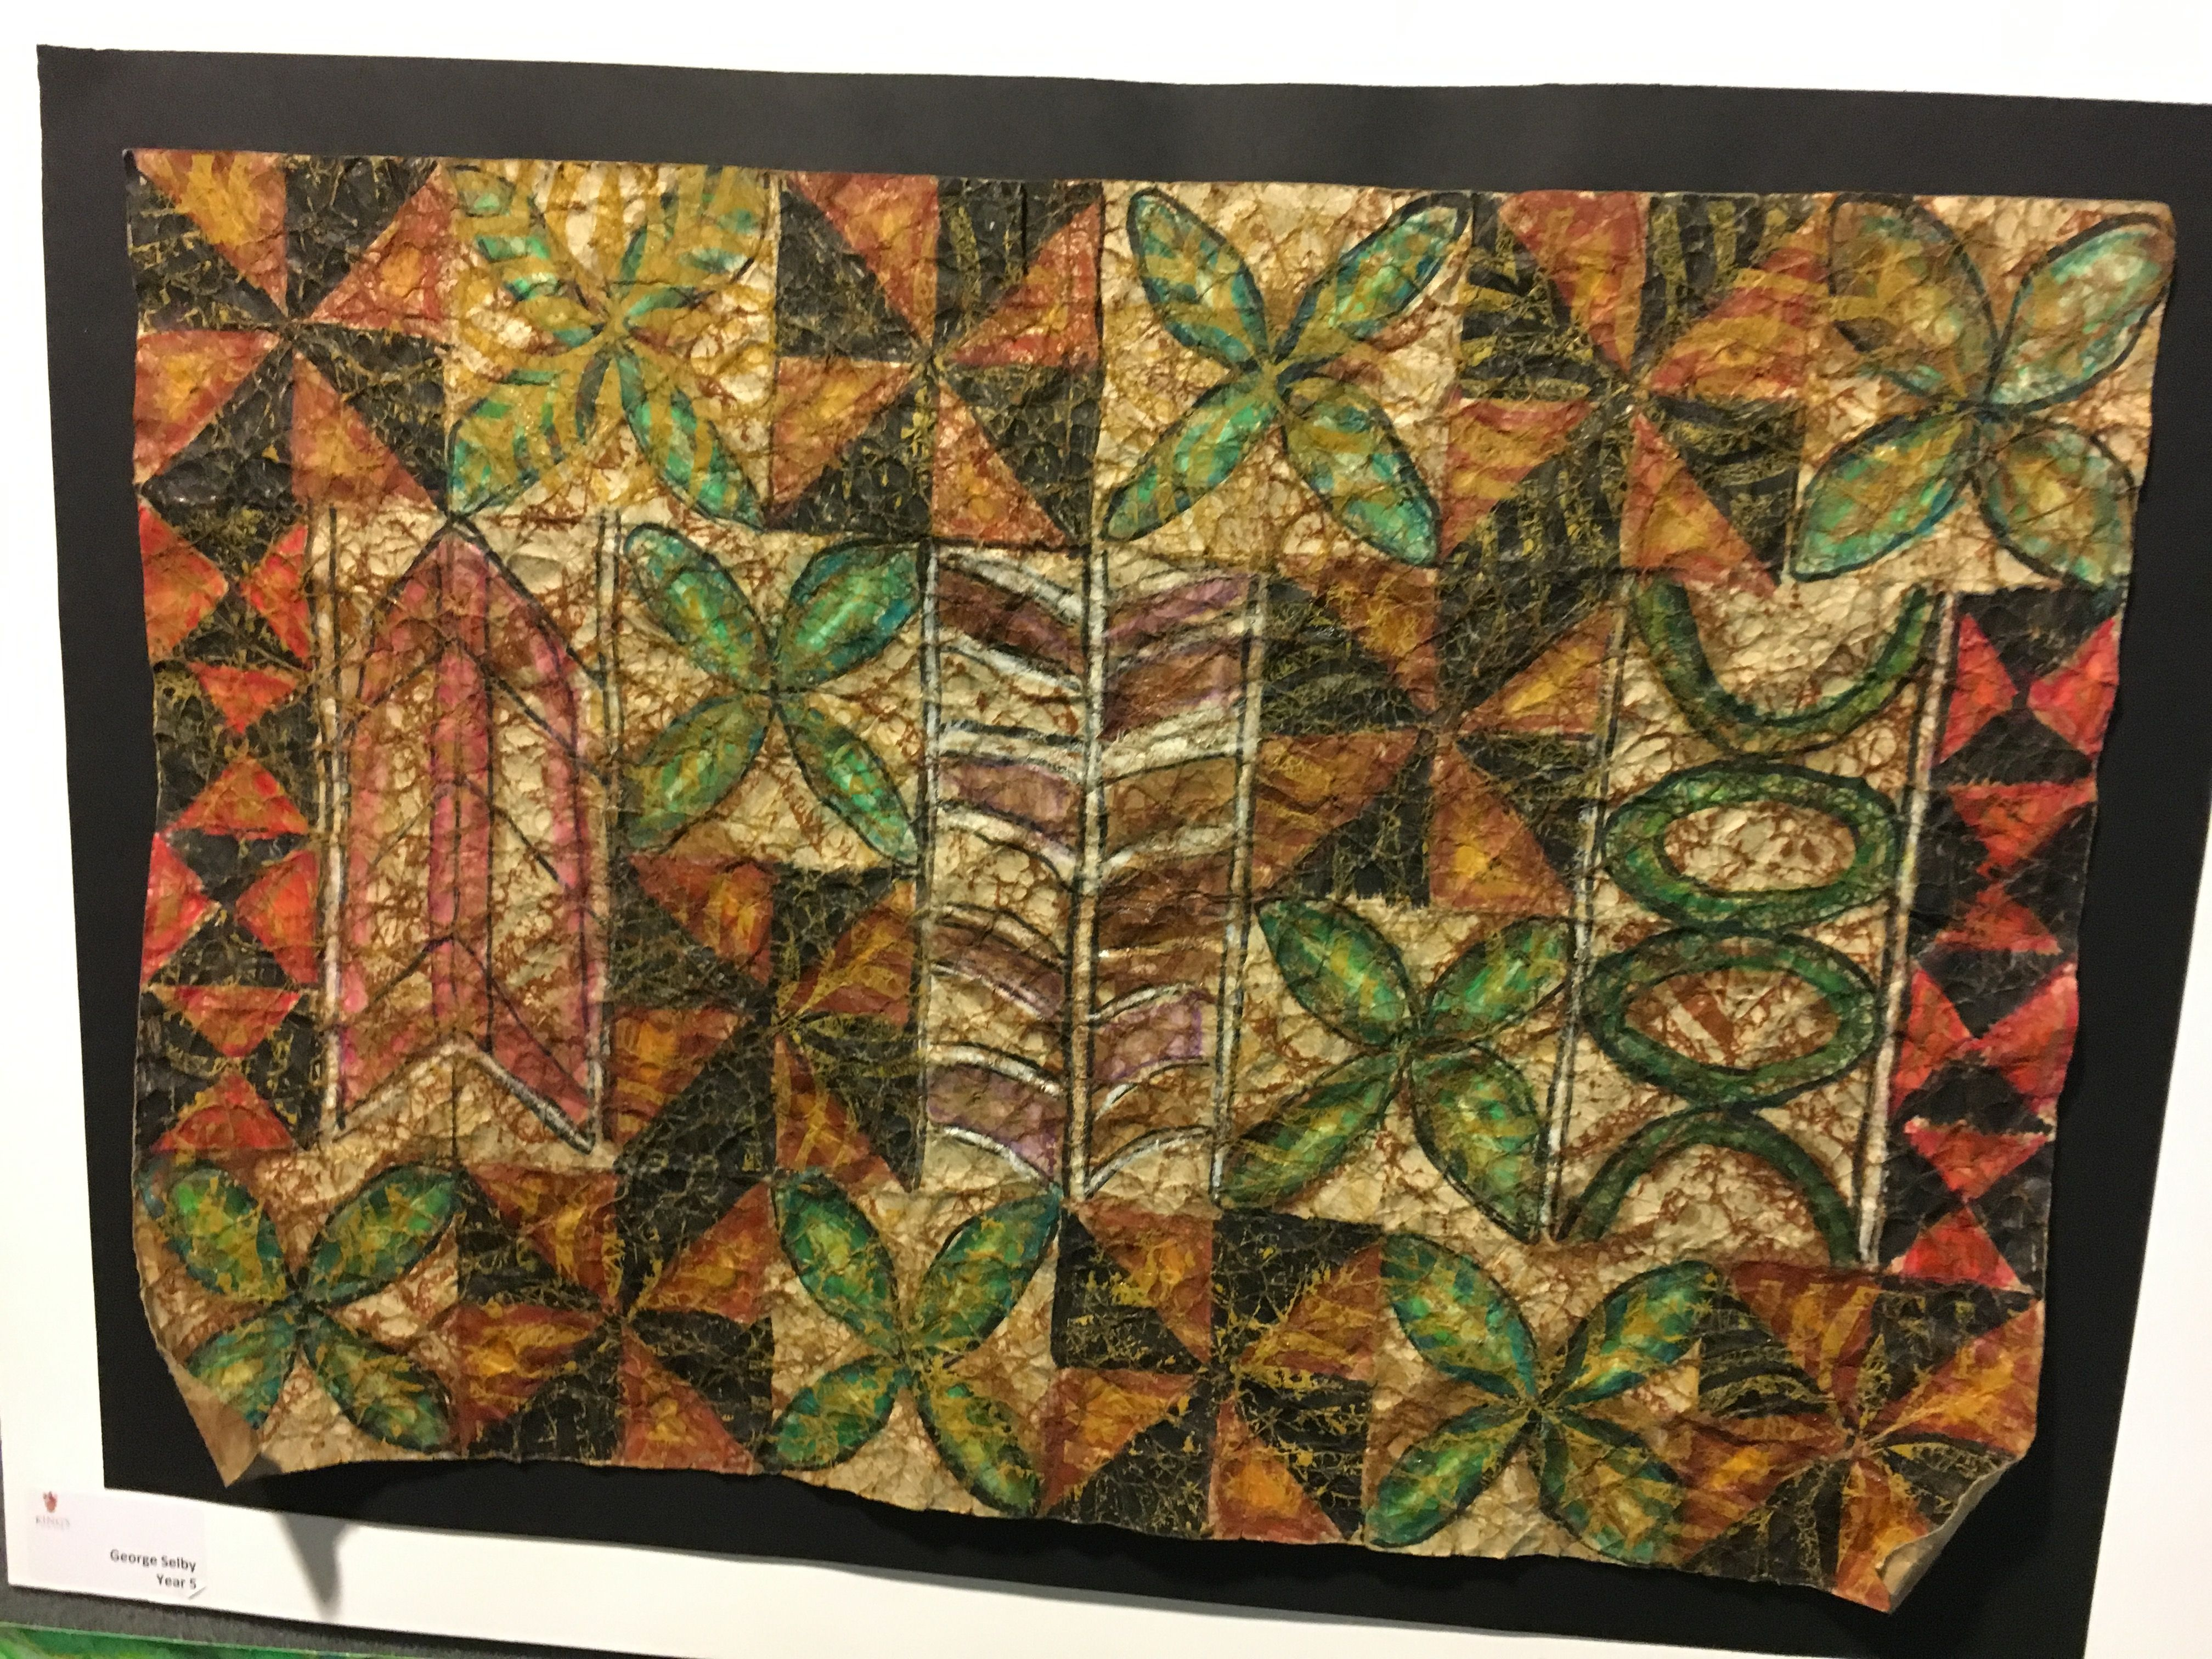 Pin by Pip Renton on Pacifika art Quilts, Blanket